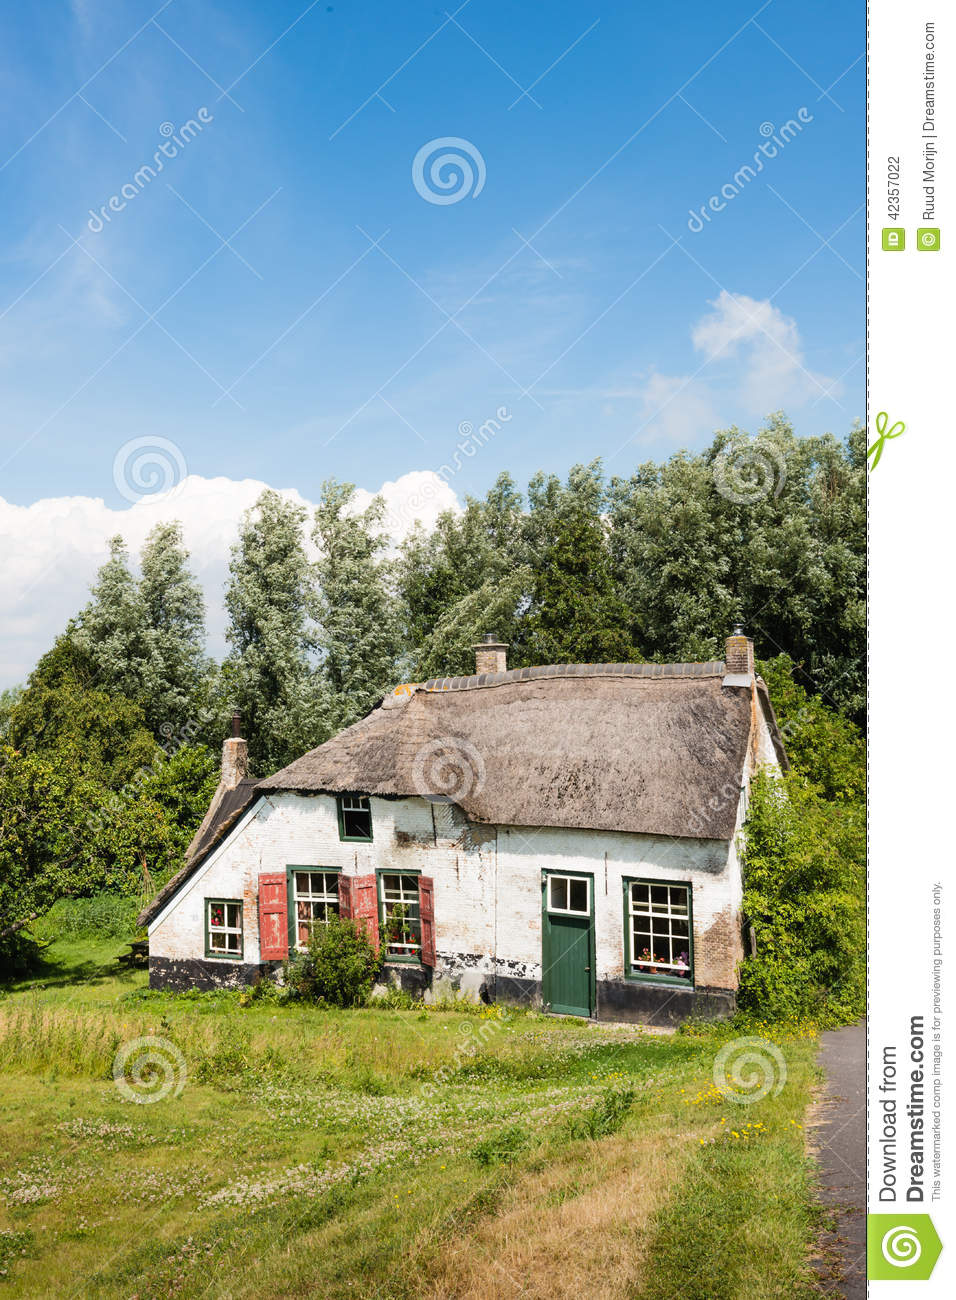 Old abandoned farm house with thatched roof stock photo Farm house netherlands